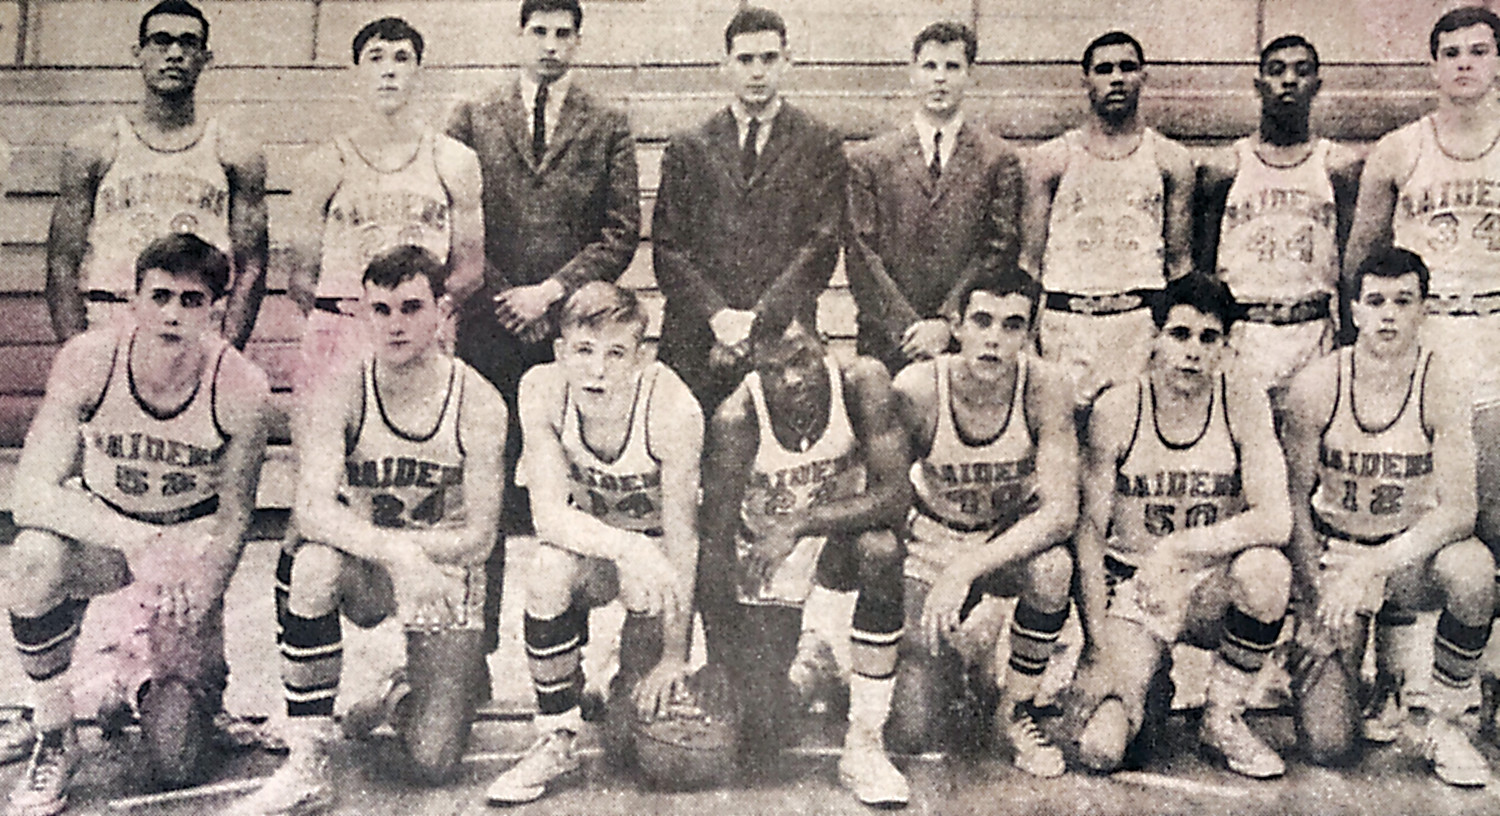 The 1968 Middletown Area High School boys basketball team won the Class B state championship. Front row: Edward Chubb, Richard Barnoski, David Twardzik, Harold Brown, co-captain, Barry Ulsh, Charles Etter and Edward Tennis. Standing, Owen Hannah, Charles Bowen, Kenneth Miller, assistant coach, Casper Voithofer, head coach, William Gross, freshman coach, Clifton Brown, Brett Whittle and John Scudder.